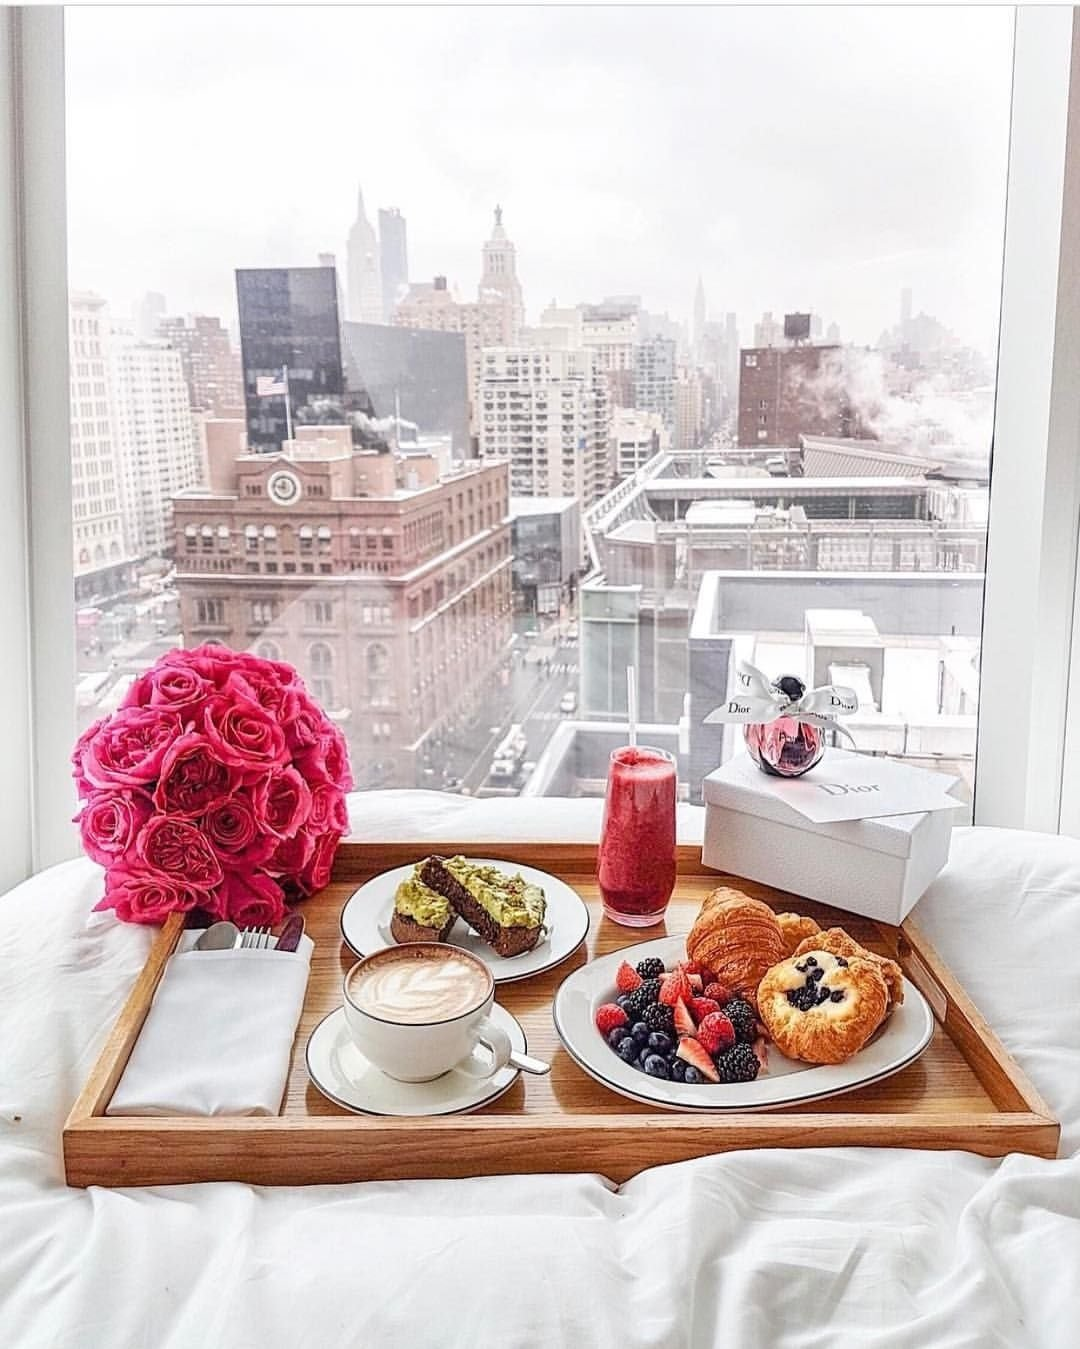 10 Gorgeous Romantic Breakfast In Bed Ideas see this instagram photofashiongoalsz e280a2 21 8k likes breakfast